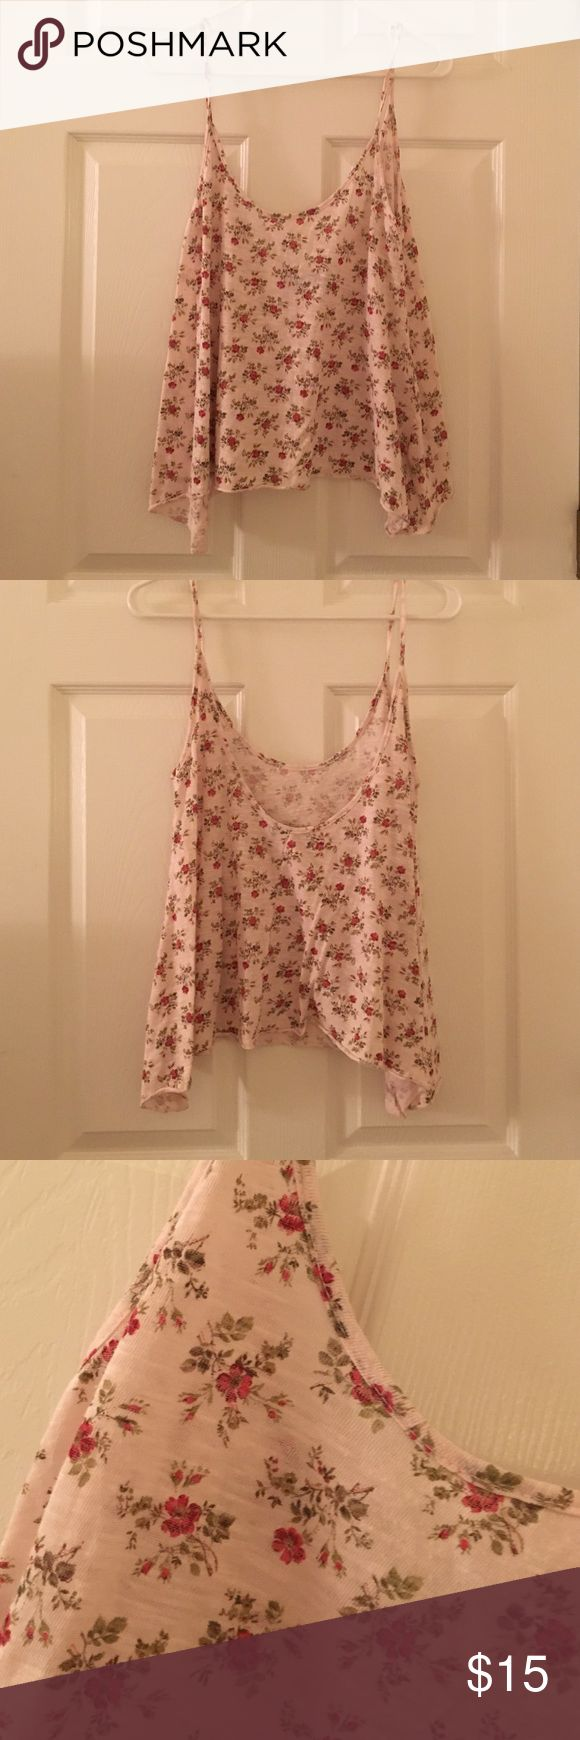 Brandy Melville Top Beautiful floral Brandy Melville top from their Rome, Italy store! Brandy Melville Tops